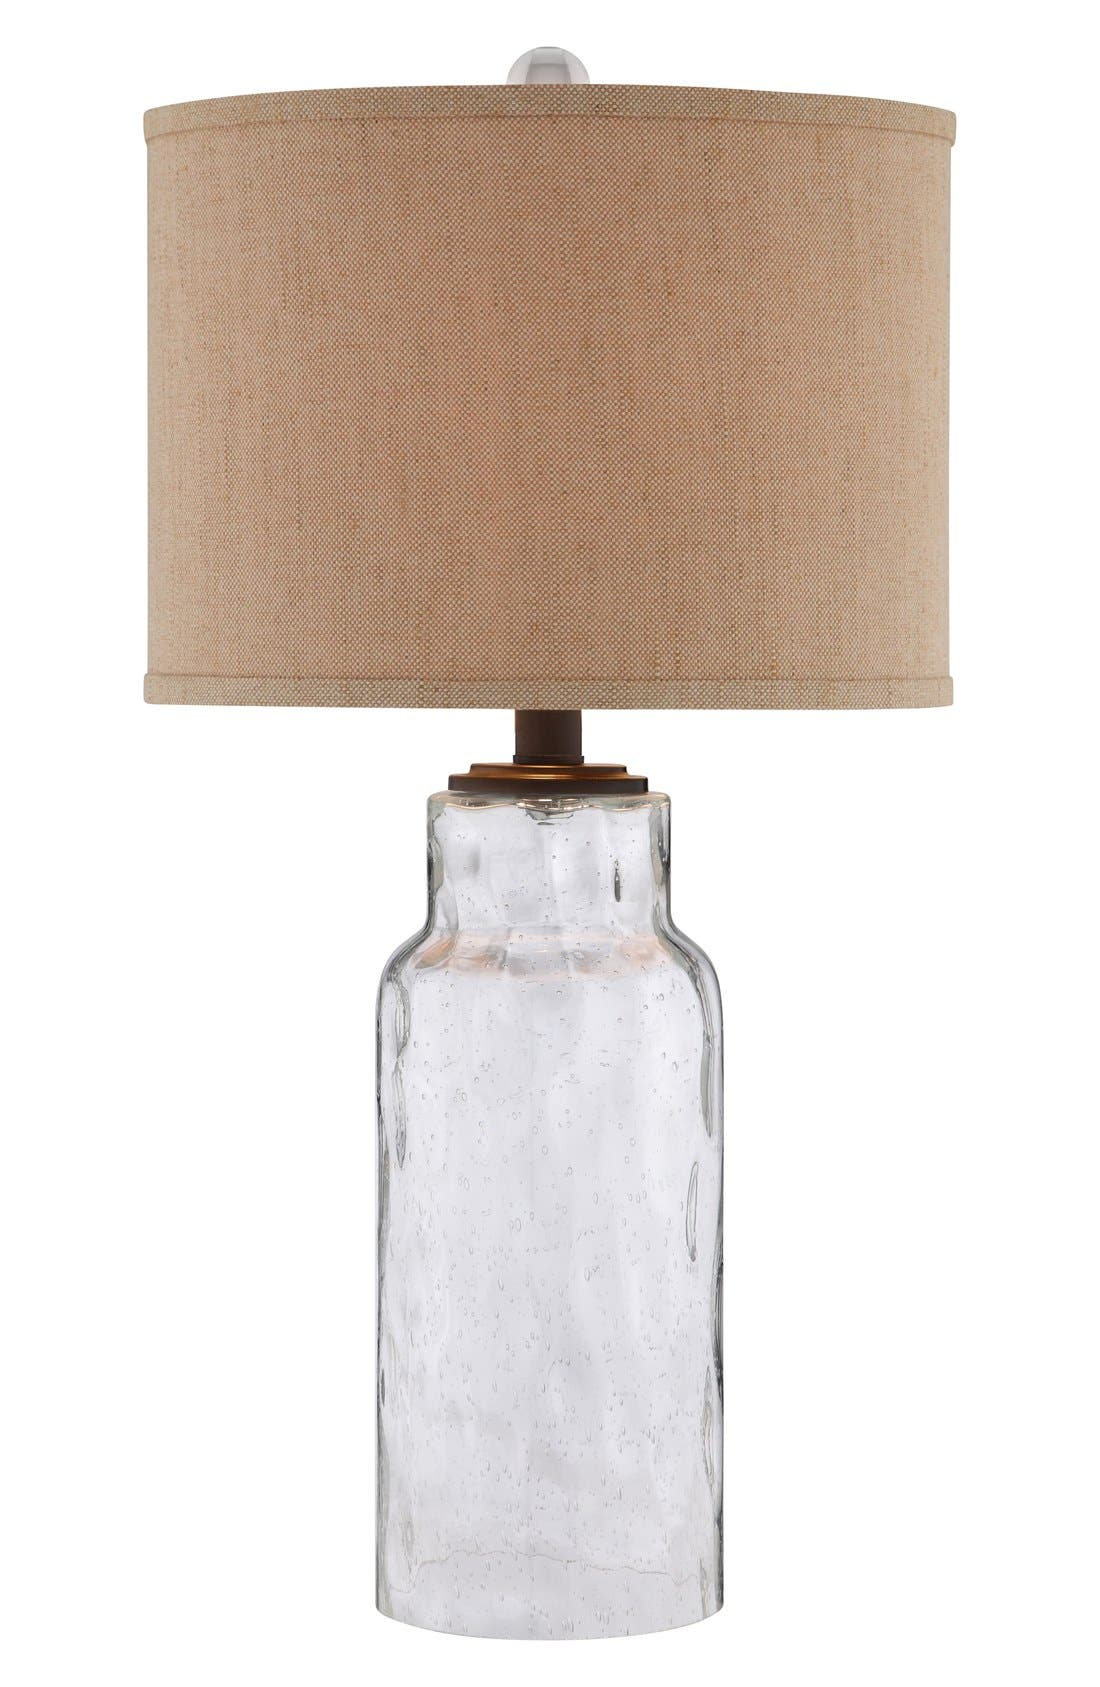 Clear Dimpled Glass Table Lamp,                             Main thumbnail 1, color,